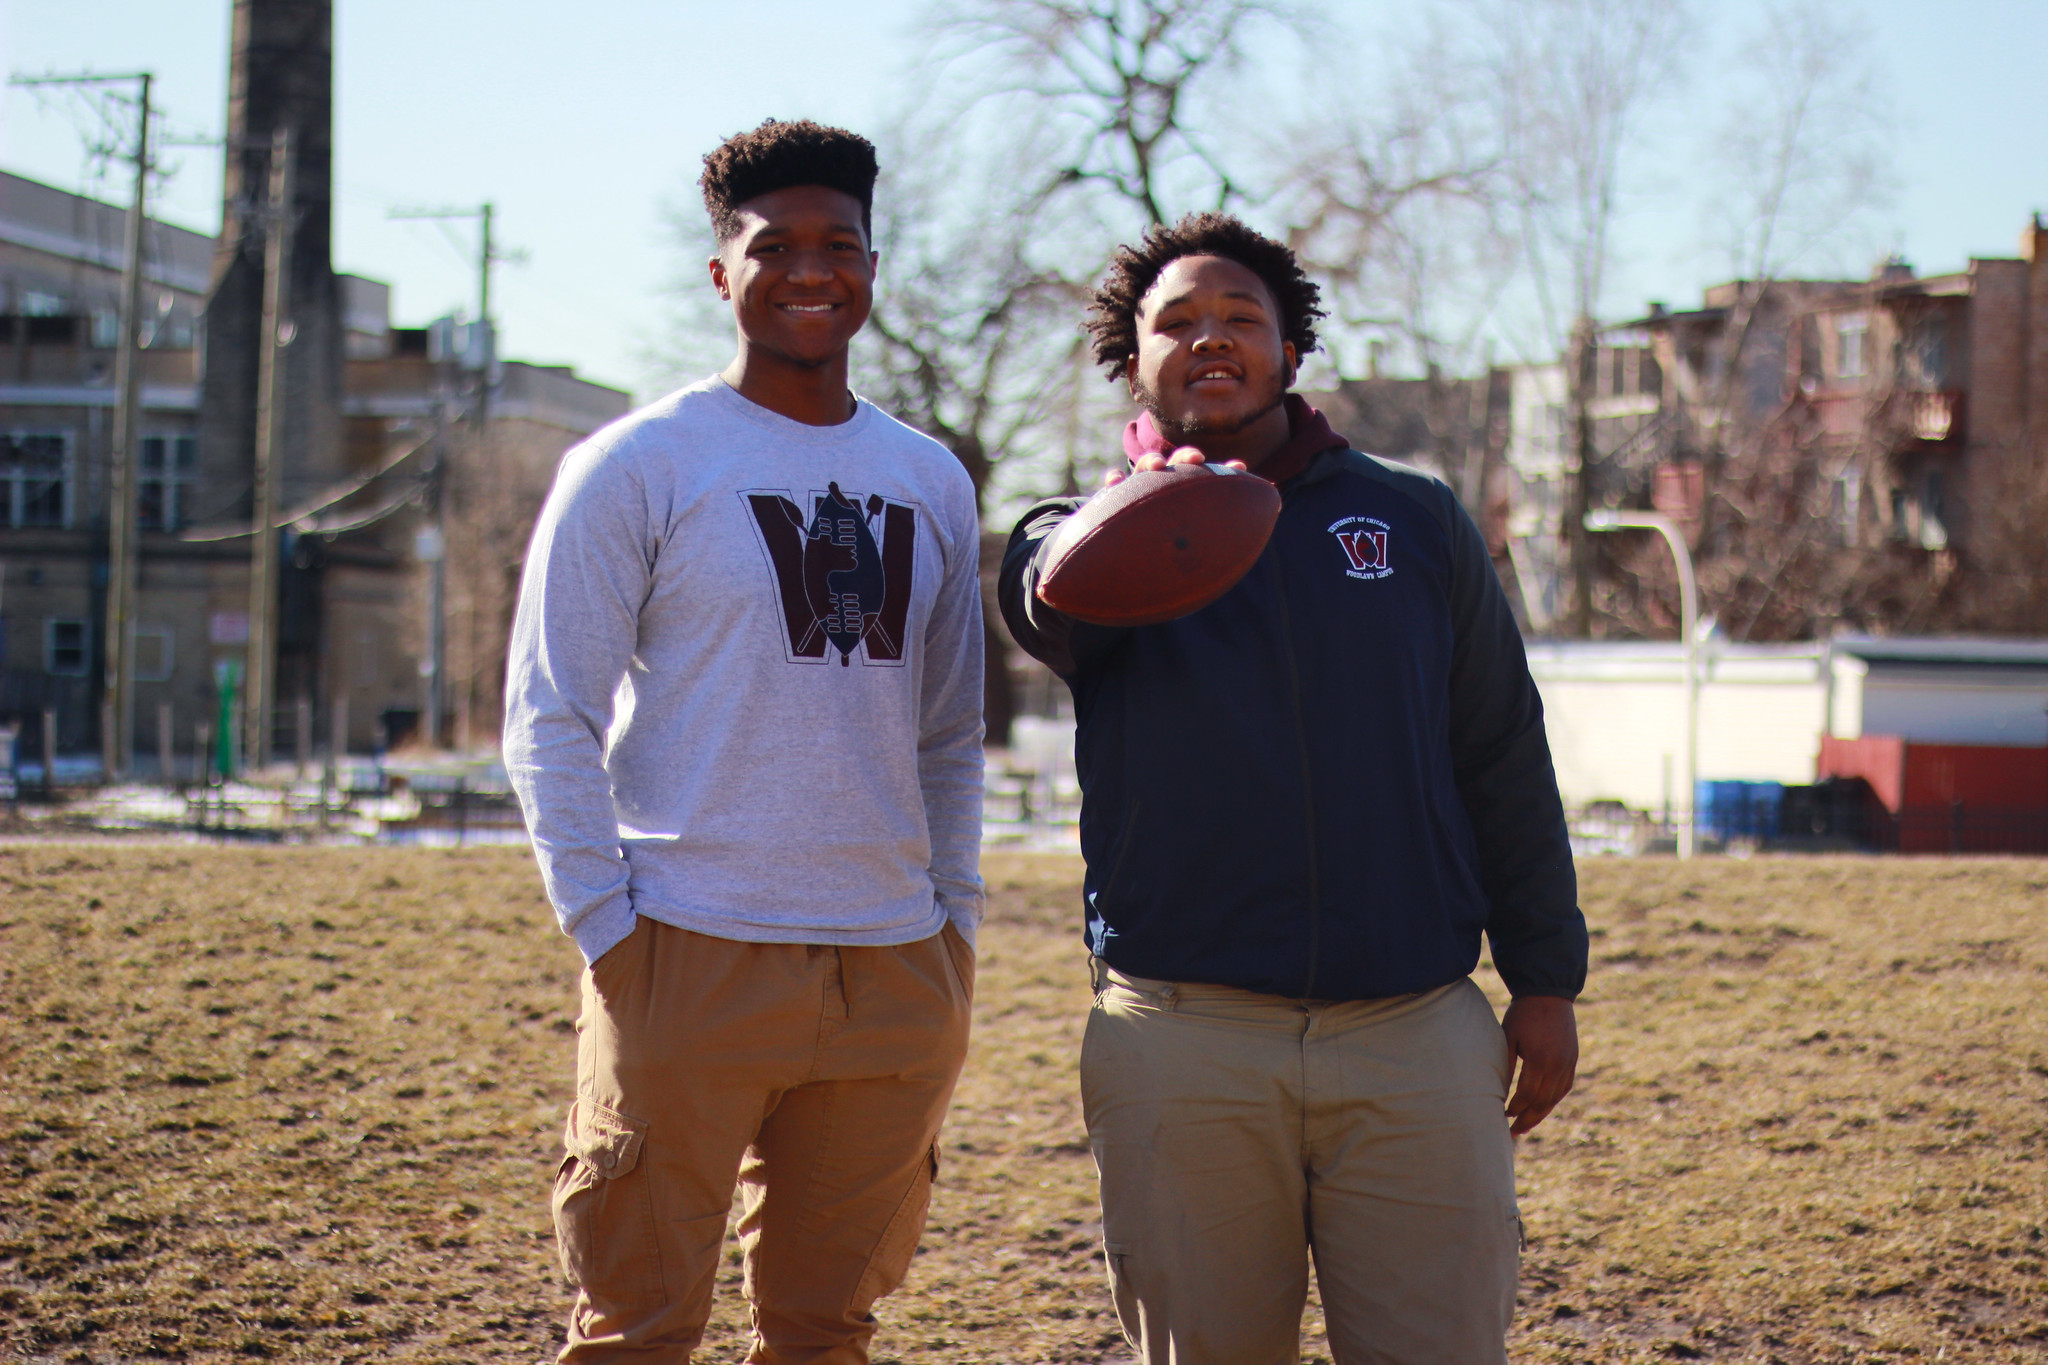 Julien and Terrance stand side by side outside their campus building. Terrance holds a football.